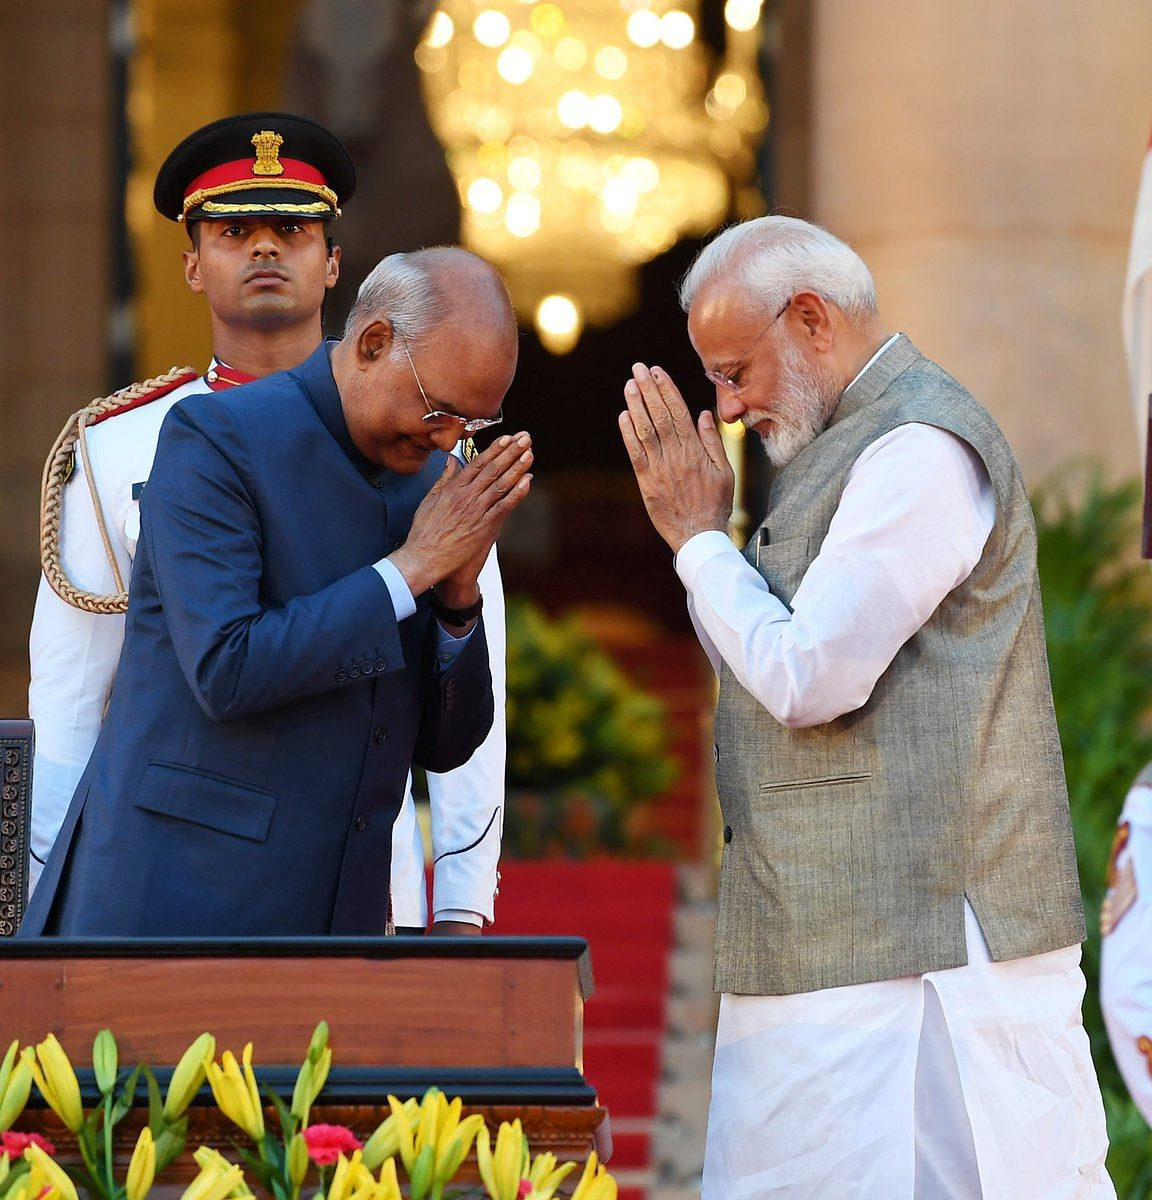 President Ram Nath Kovind with PM Narendra Modi ahead of the oath-taking ceremony of his new council of ministers at Rashtrapati Bhavan in New Delhi on Thursday evening